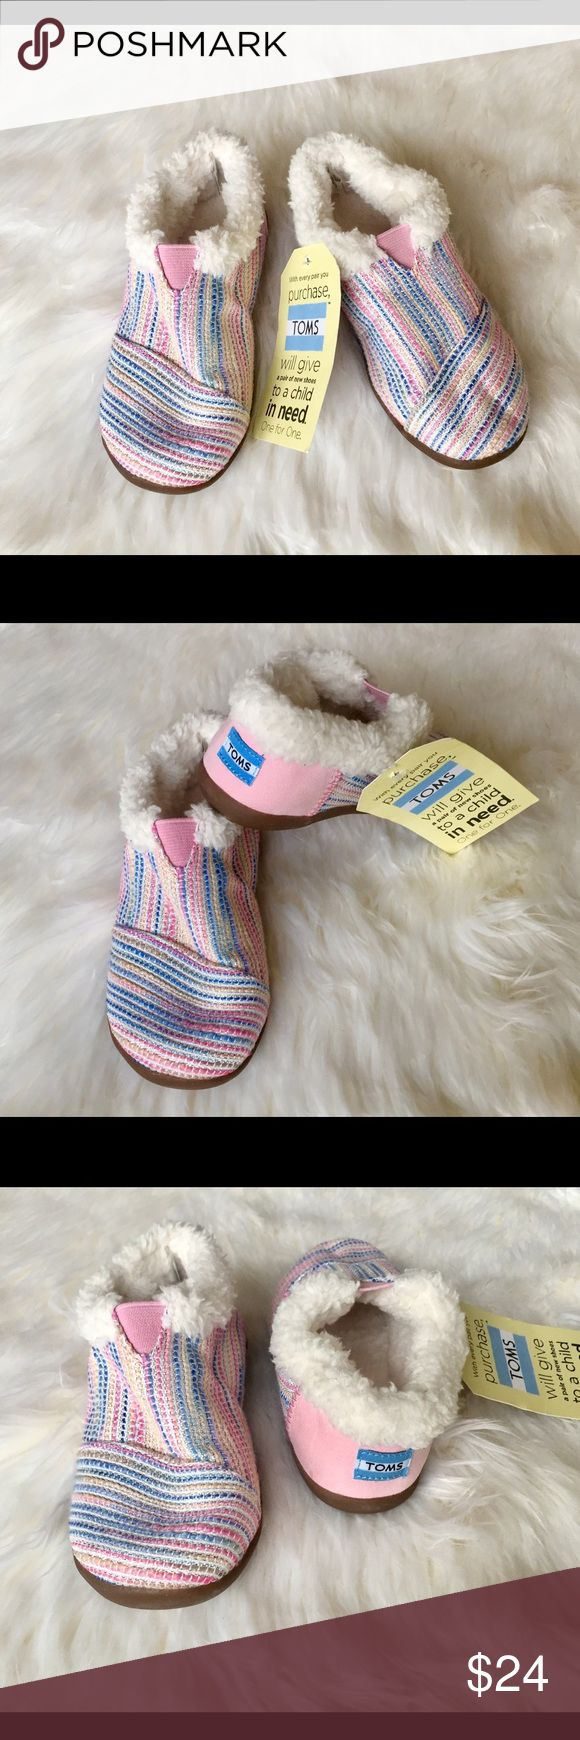 Pink Metallic Woven Tiny TOMS House Slippers,Sz 11 These super cute, warm and cozy slippers are the perfect feet huggers for your little one this season•extremely comfortable with dreamy pink metallic colors TOMS Shoes Slippers